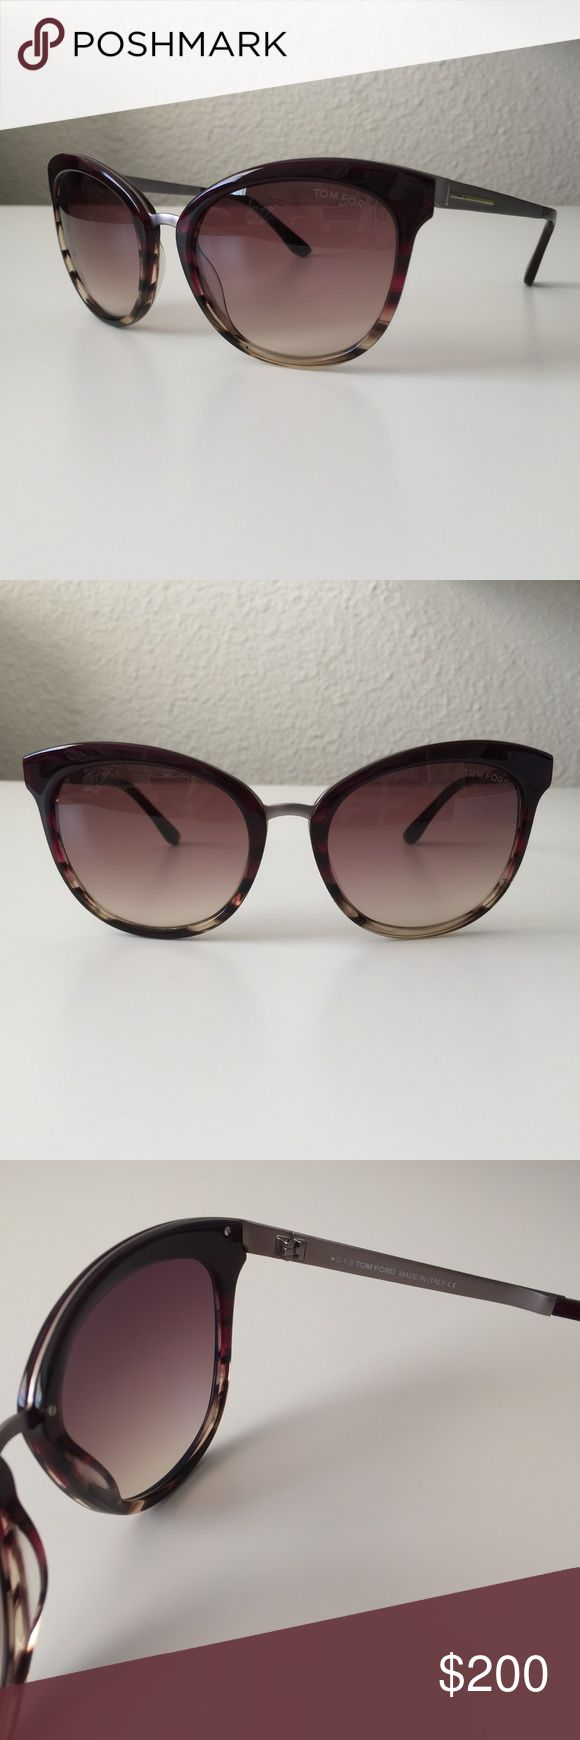 Tom Ford Emma Cat Eye Sunglasses NWT Tom Ford Emma Cat Eye Sunglasses.  Bordeaux frame with Brown gradient lens.   Brand new comes with cleaning cloth and case as pictured.  These are still selling full price at Tom Ford & Nordstrom. Clean, simplified styling enhances the understated glamour of Italian-crafted sunglasses with scratch-resistant lenses. 56mm lens width; 19mm bridge width; 130mm temple length. 100% UV protection. CR-39 lenses. Acetate/metal. By Tom Ford; made in Italy. Tom Ford…